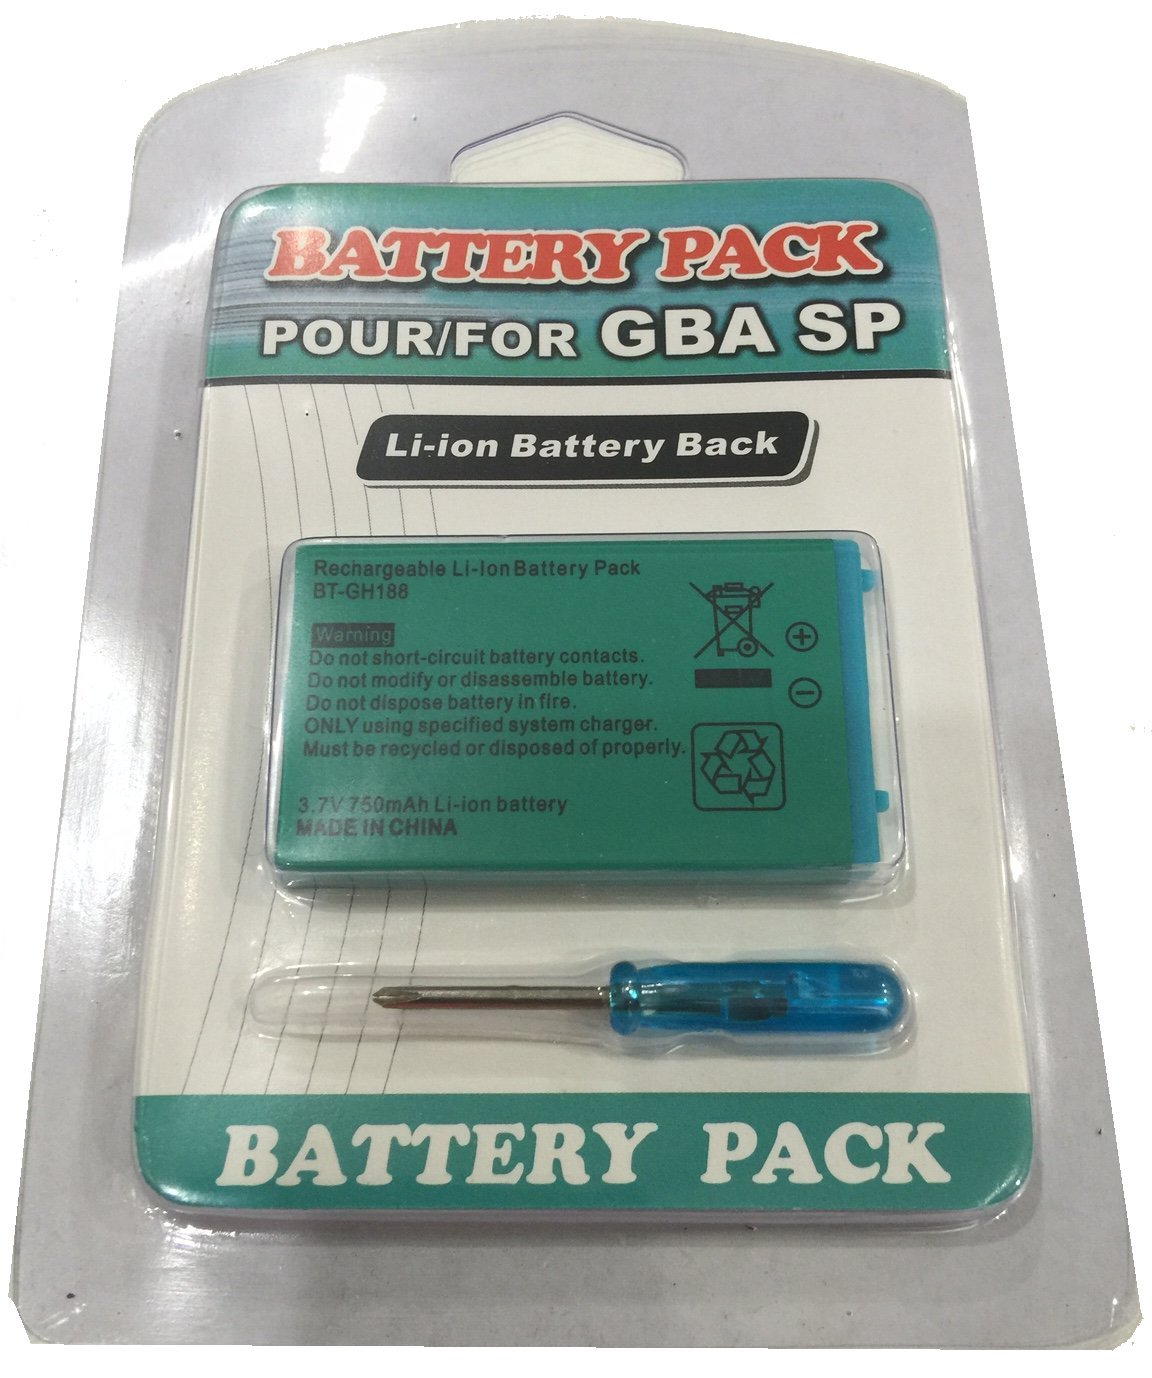 Game Boy Advance Sp Replacement Rechargeable Battery 37 Making Gameboy Systems Circuit 37v 750 Mah Li Ion Gba Video Games